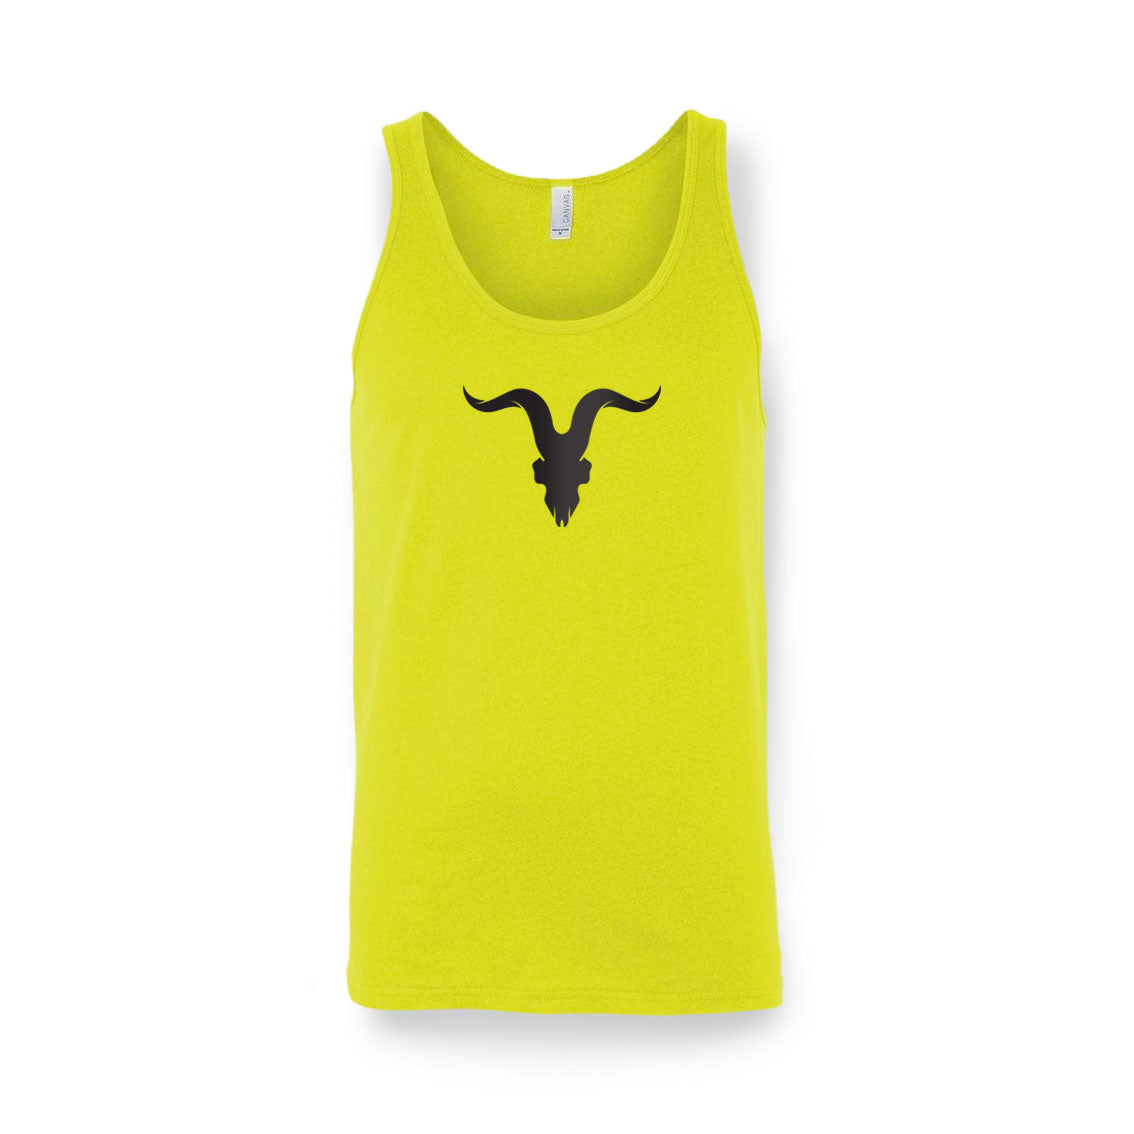 Ignite Premium Collection 'Ready for Summer' Tanks - Neon Yellow with Black Logo